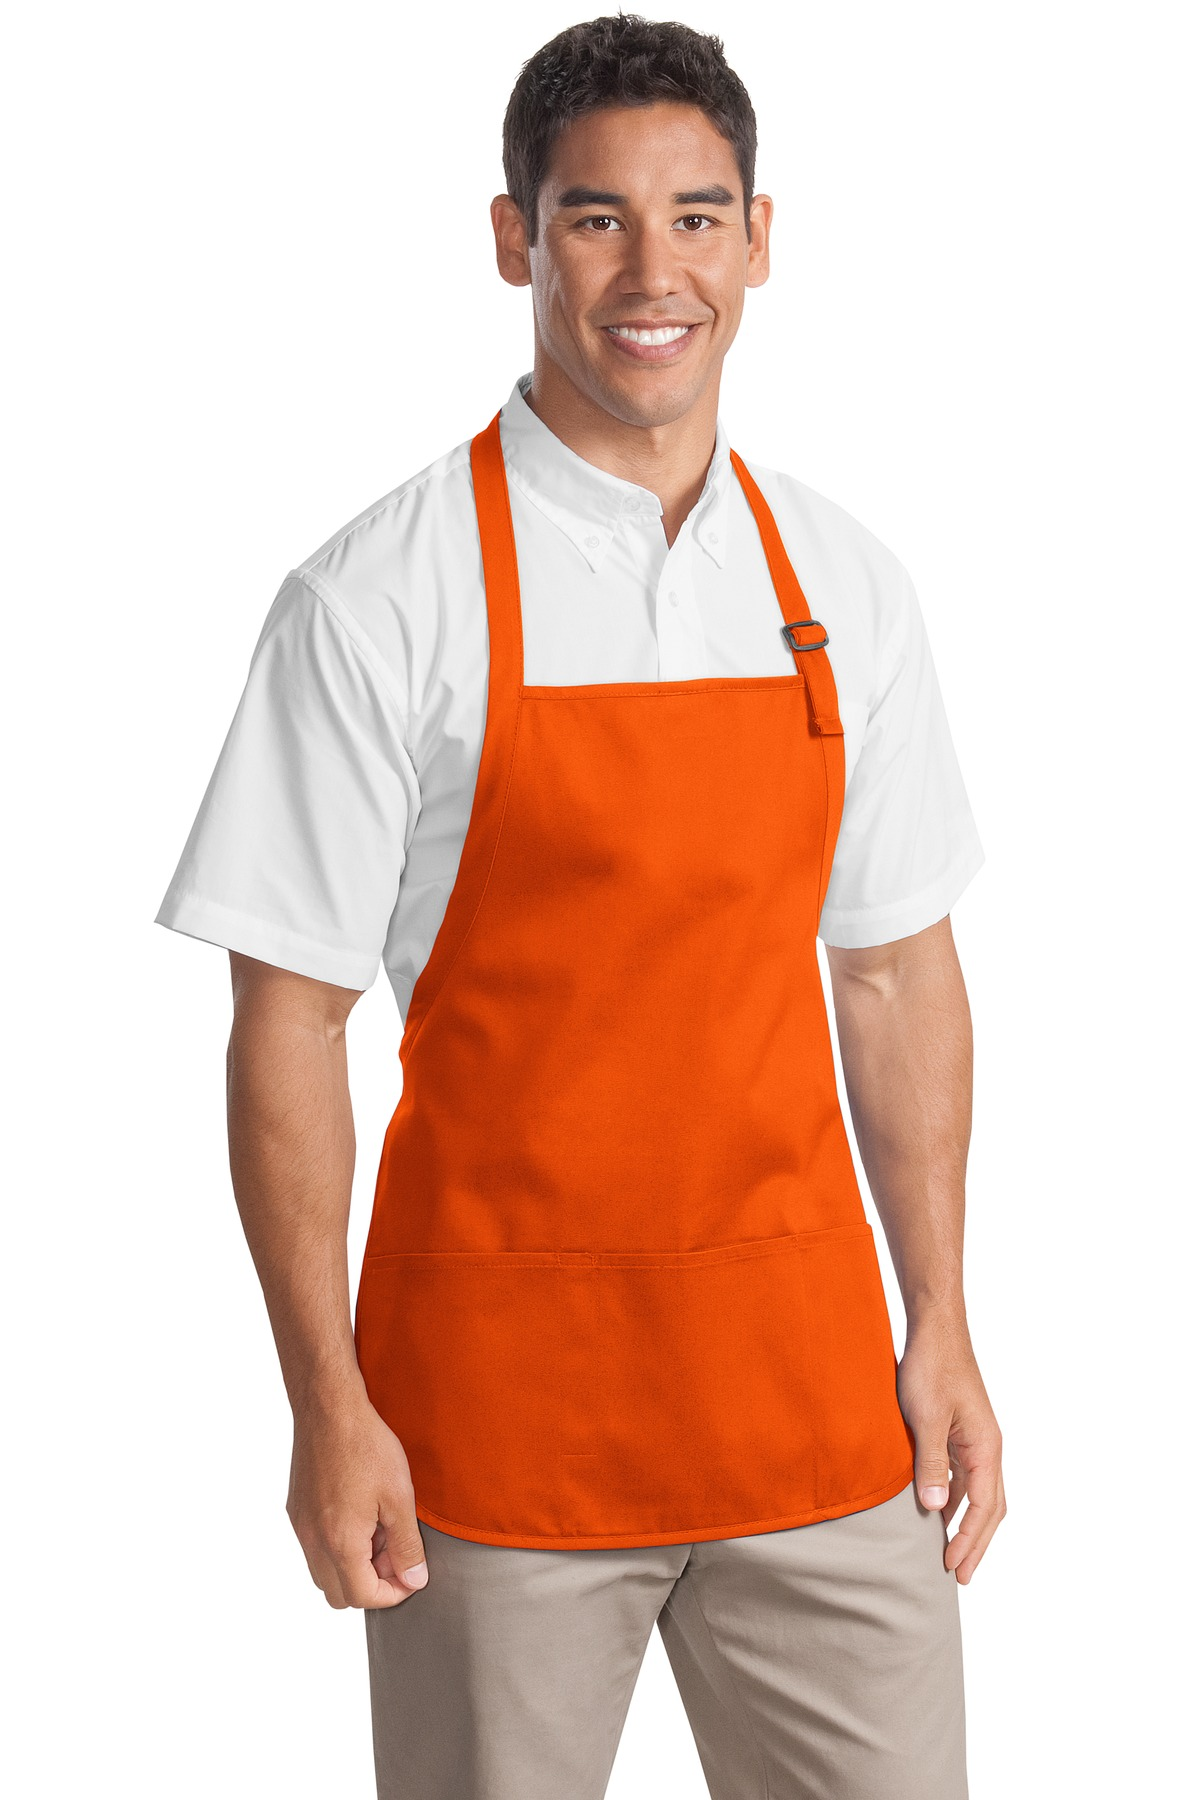 Port Authority - Medium Length Apron with Pouch Pockets. A510